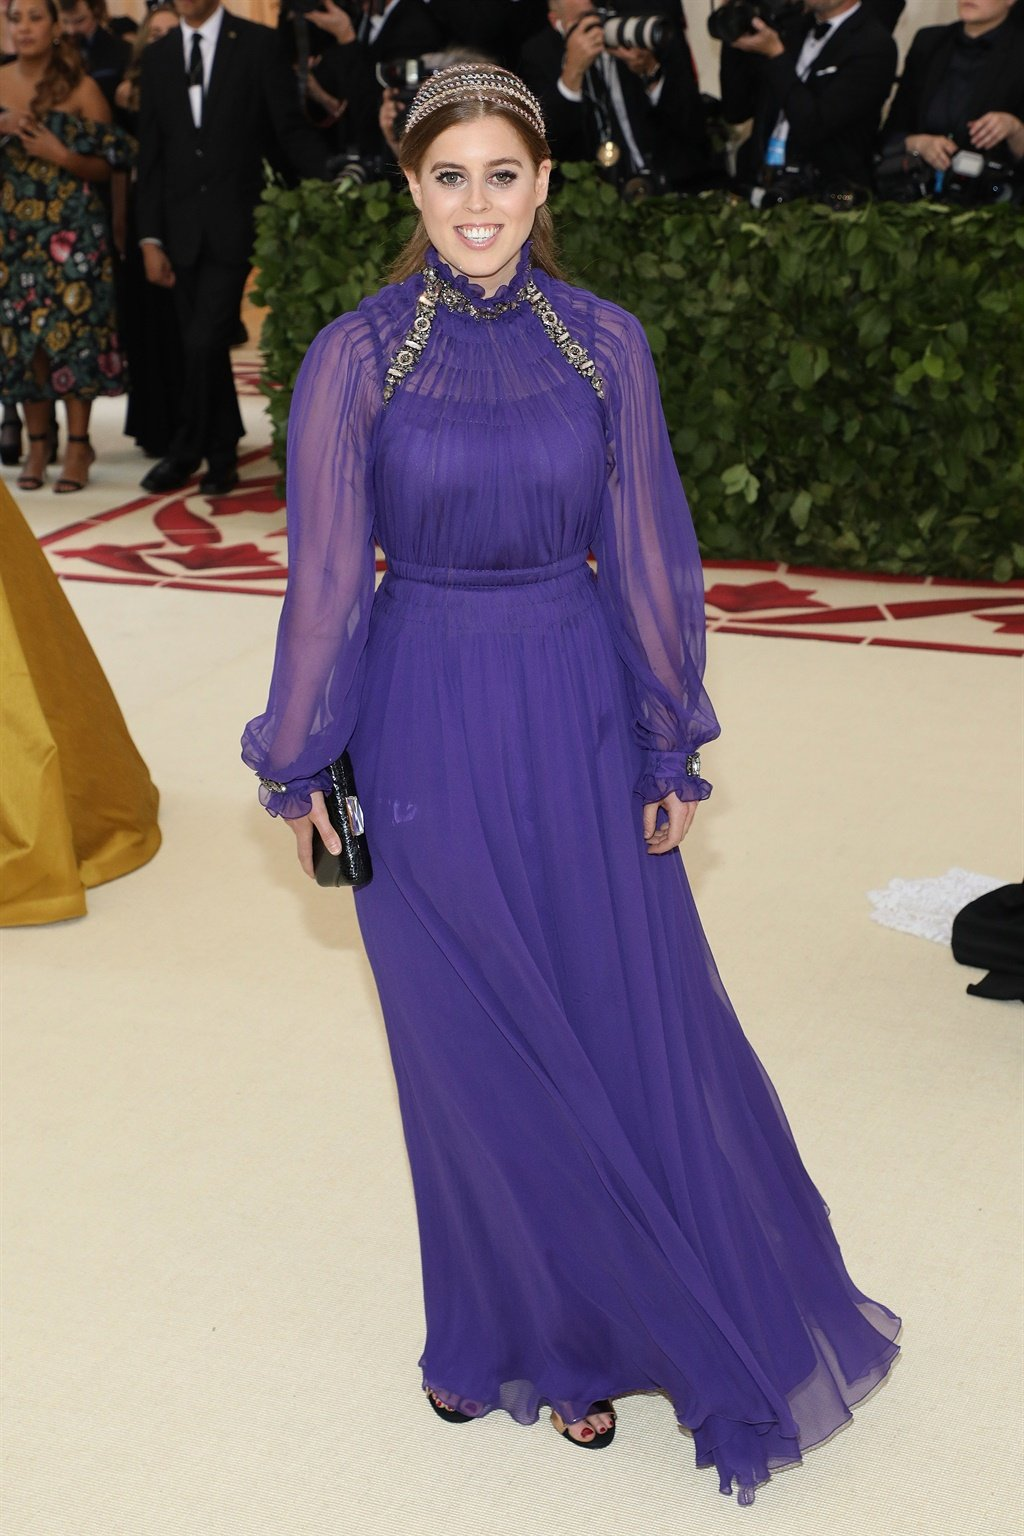 The 2019 Met Gala Theme Is Perfect for Its Hosts, Lady Gaga and Harry Styles